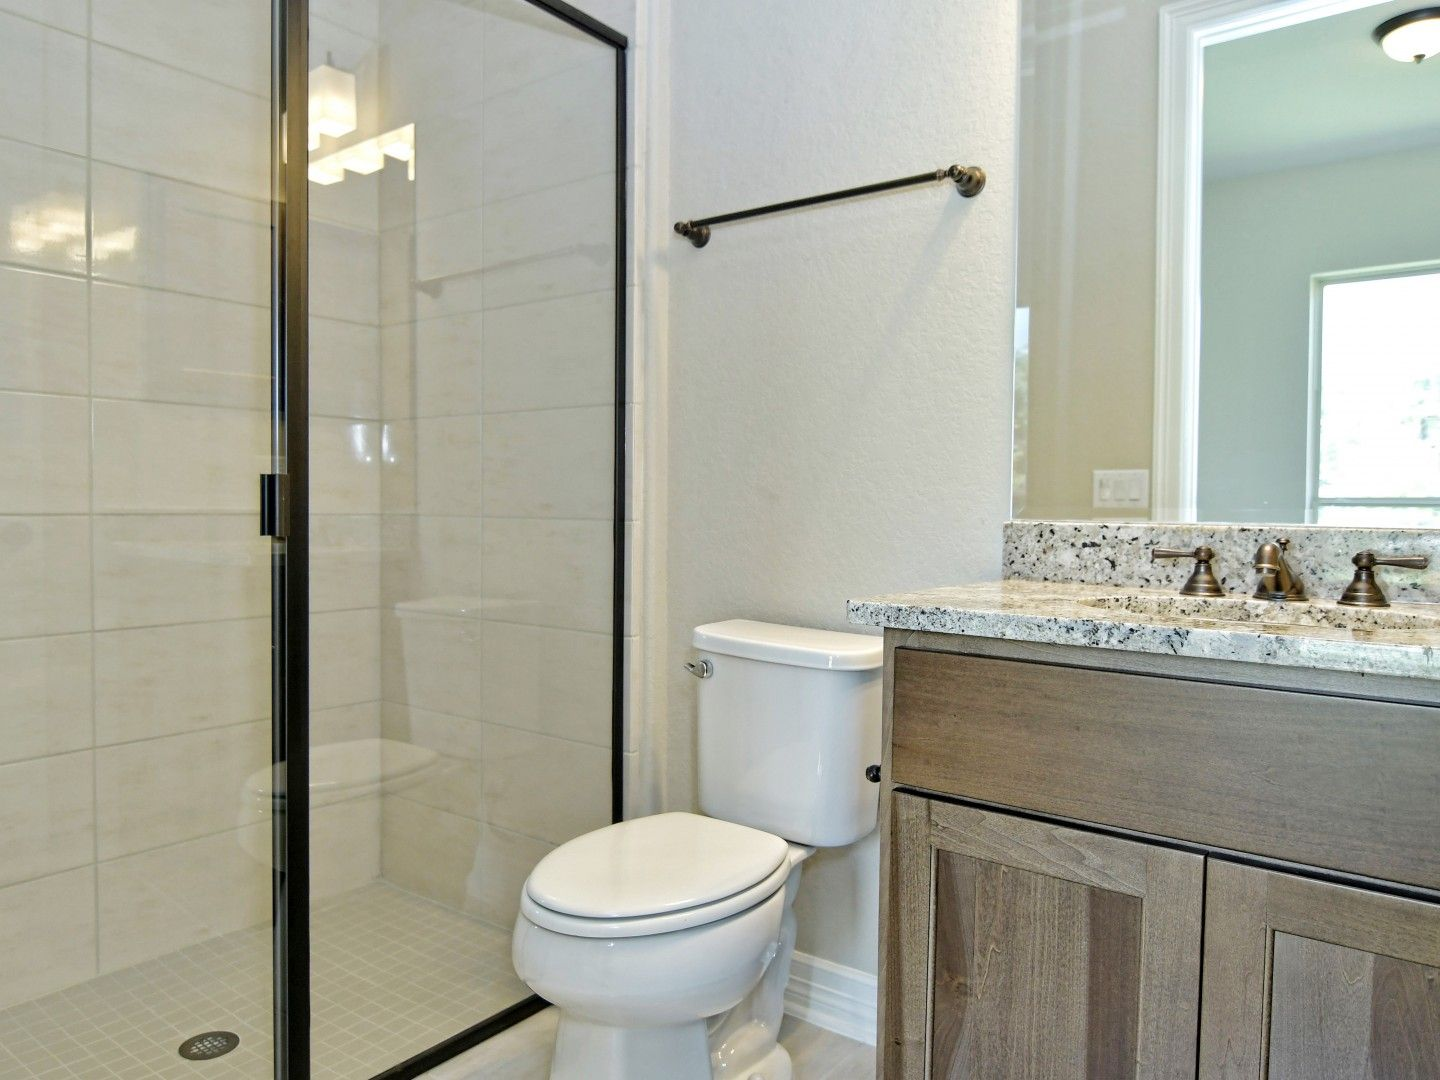 Bathroom featured in the Montava By Sitterle Homes in San Antonio, TX